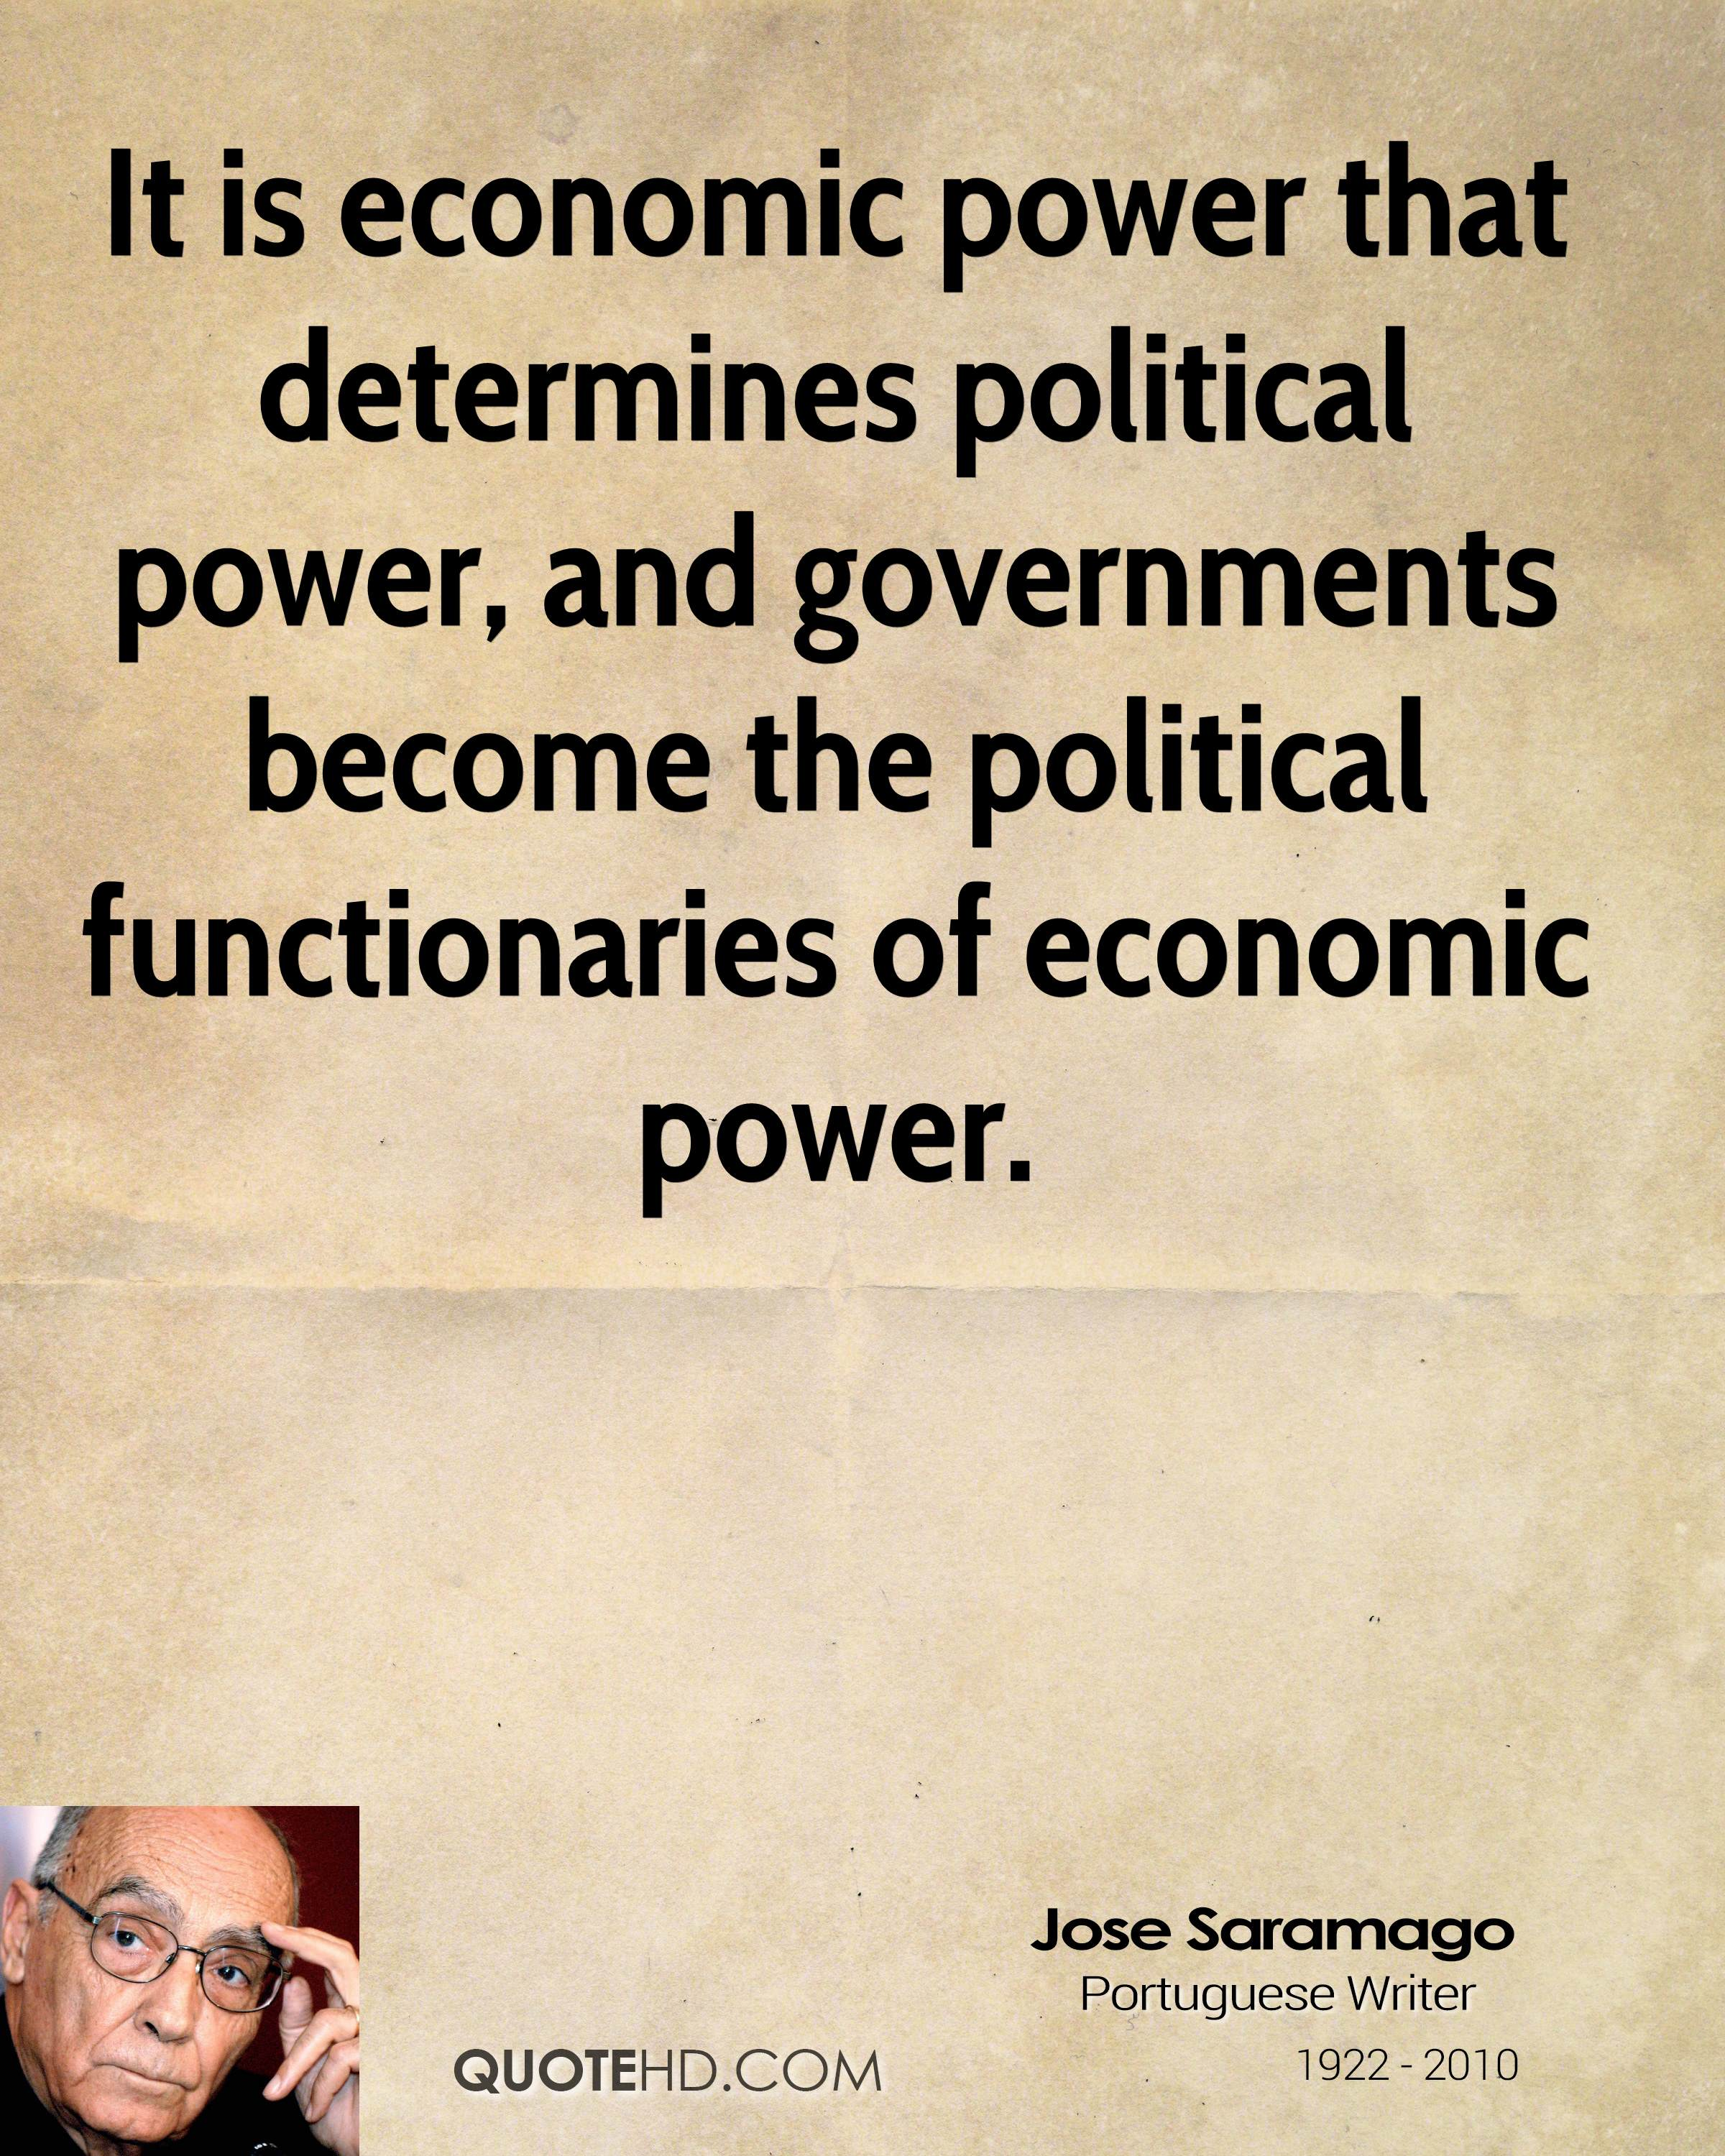 It is economic power that determines political power, and governments become the political functionaries of economic power.